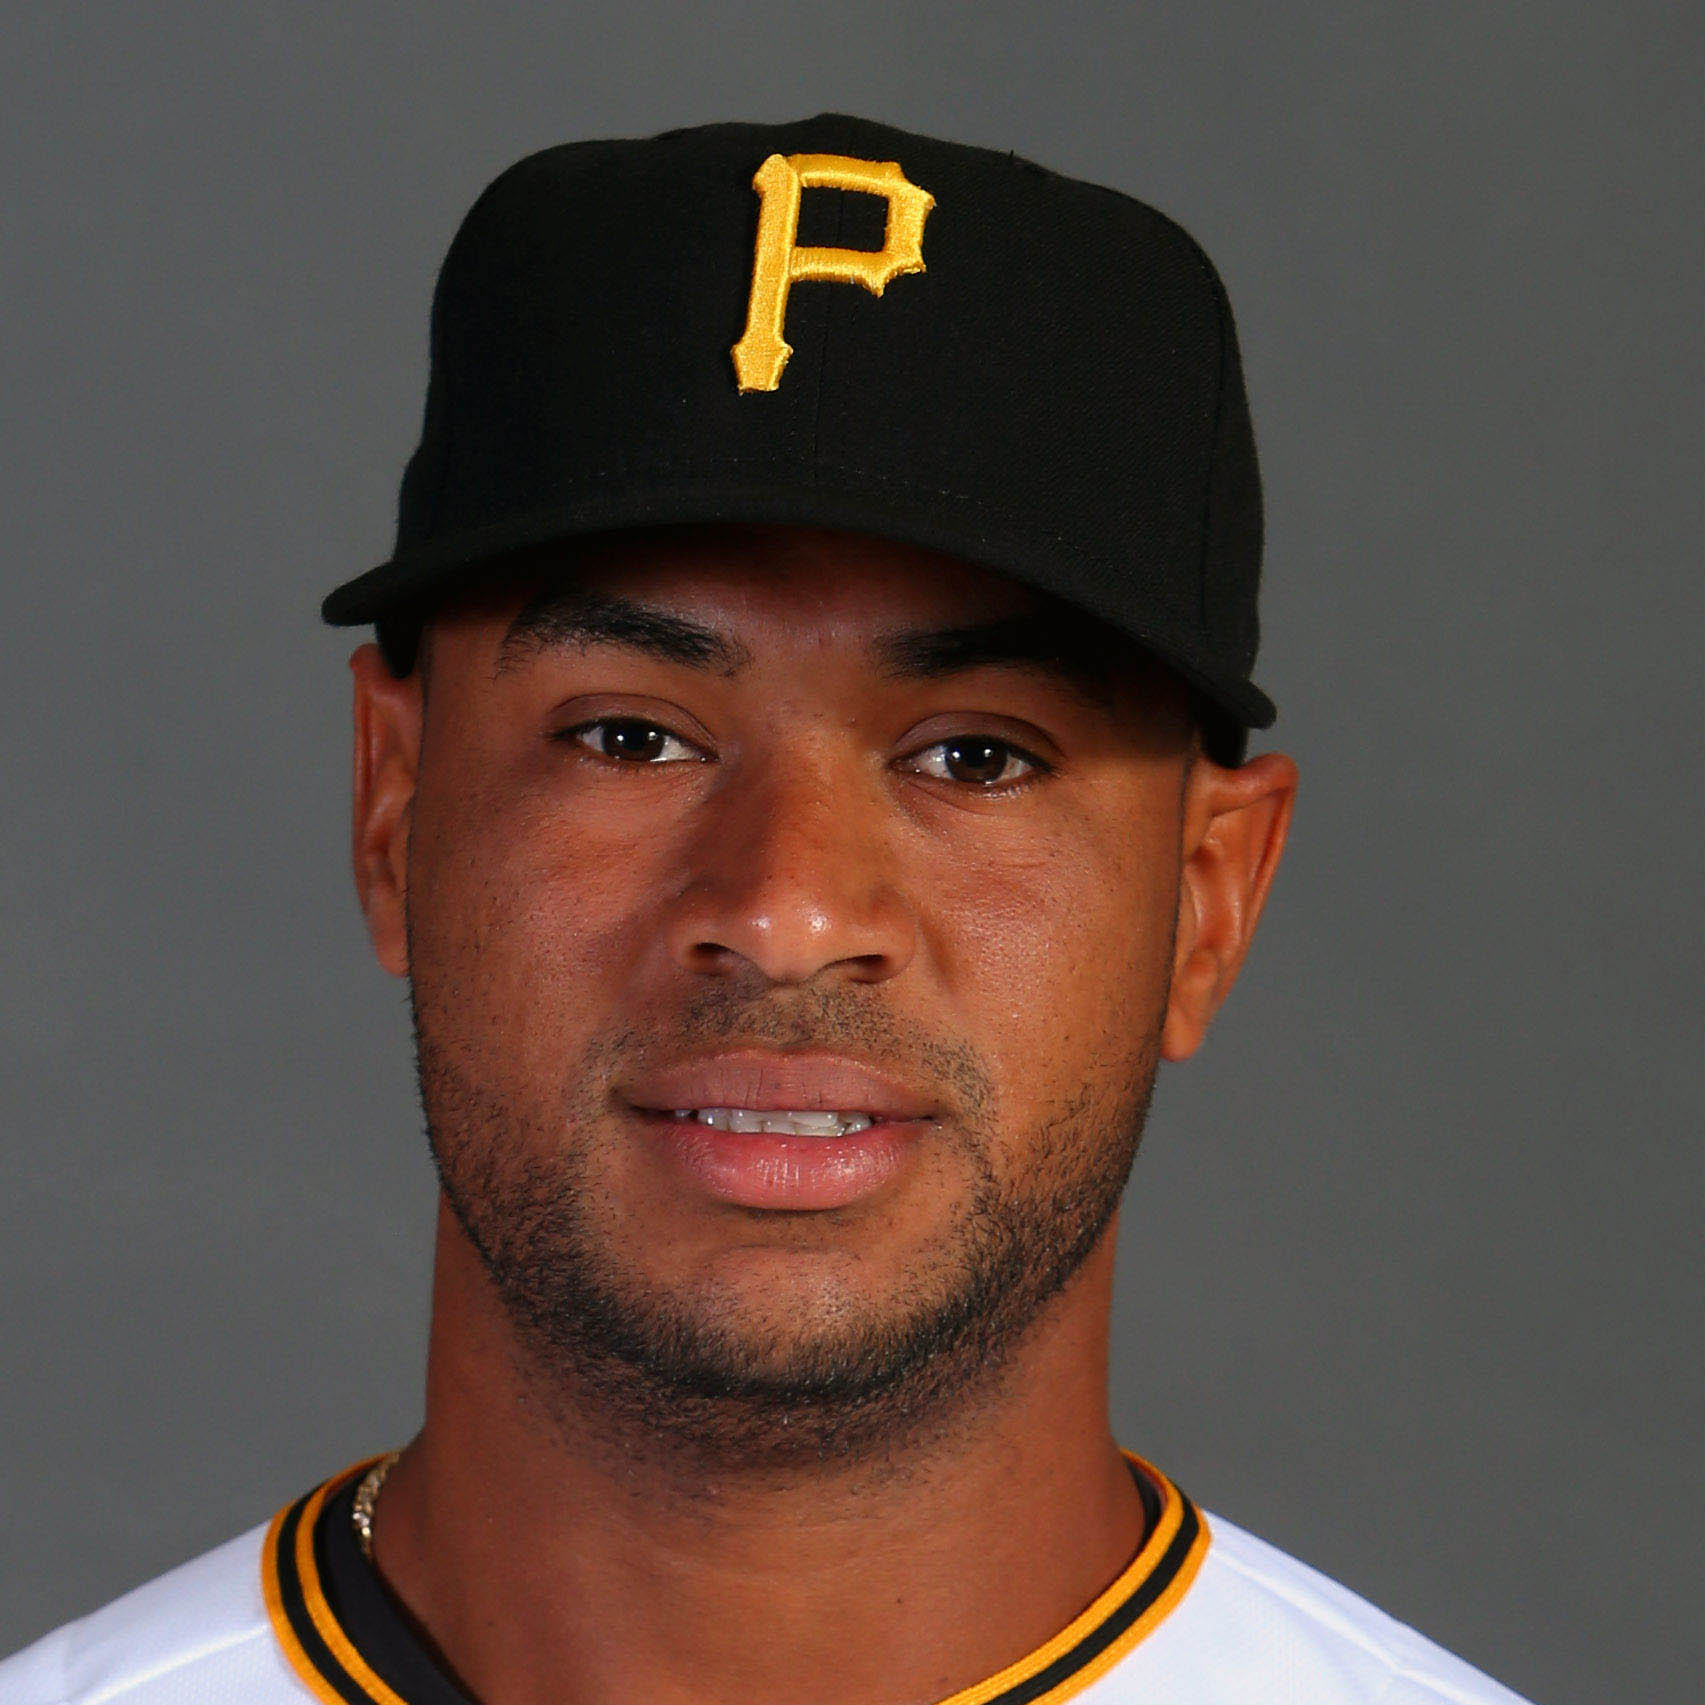 Elias Diaz (R) Headshot